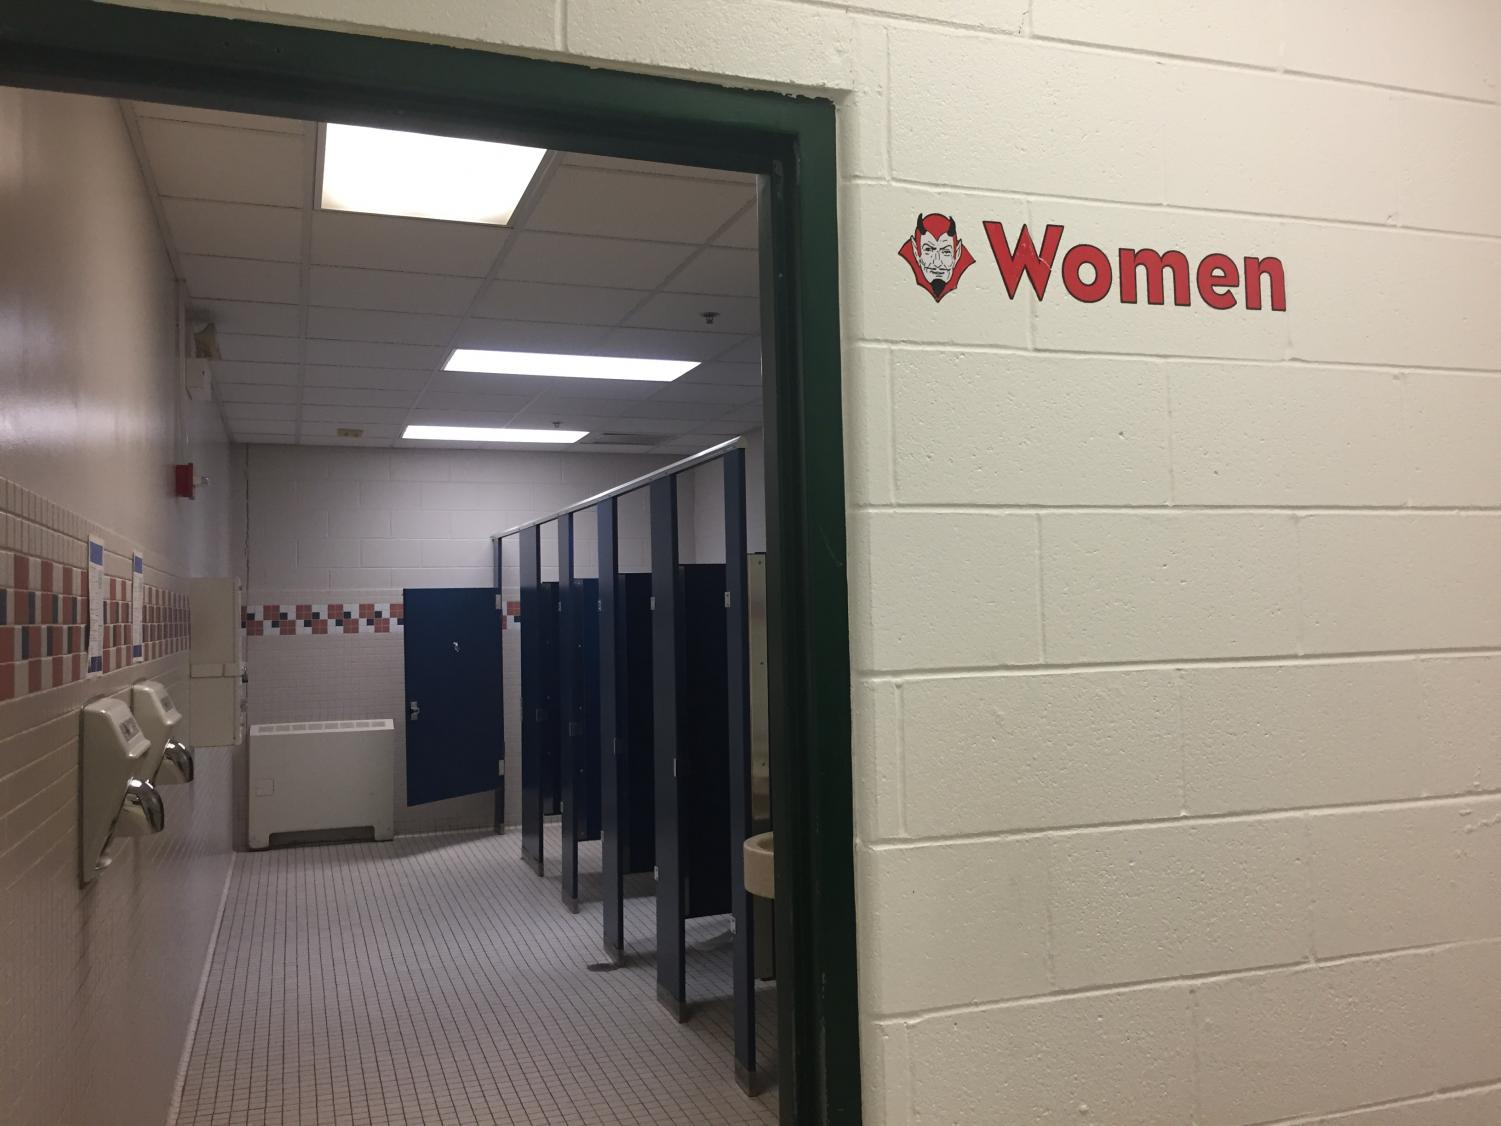 Several bathrooms all around the school are lacking doors, such as this one in the social studies hallway.